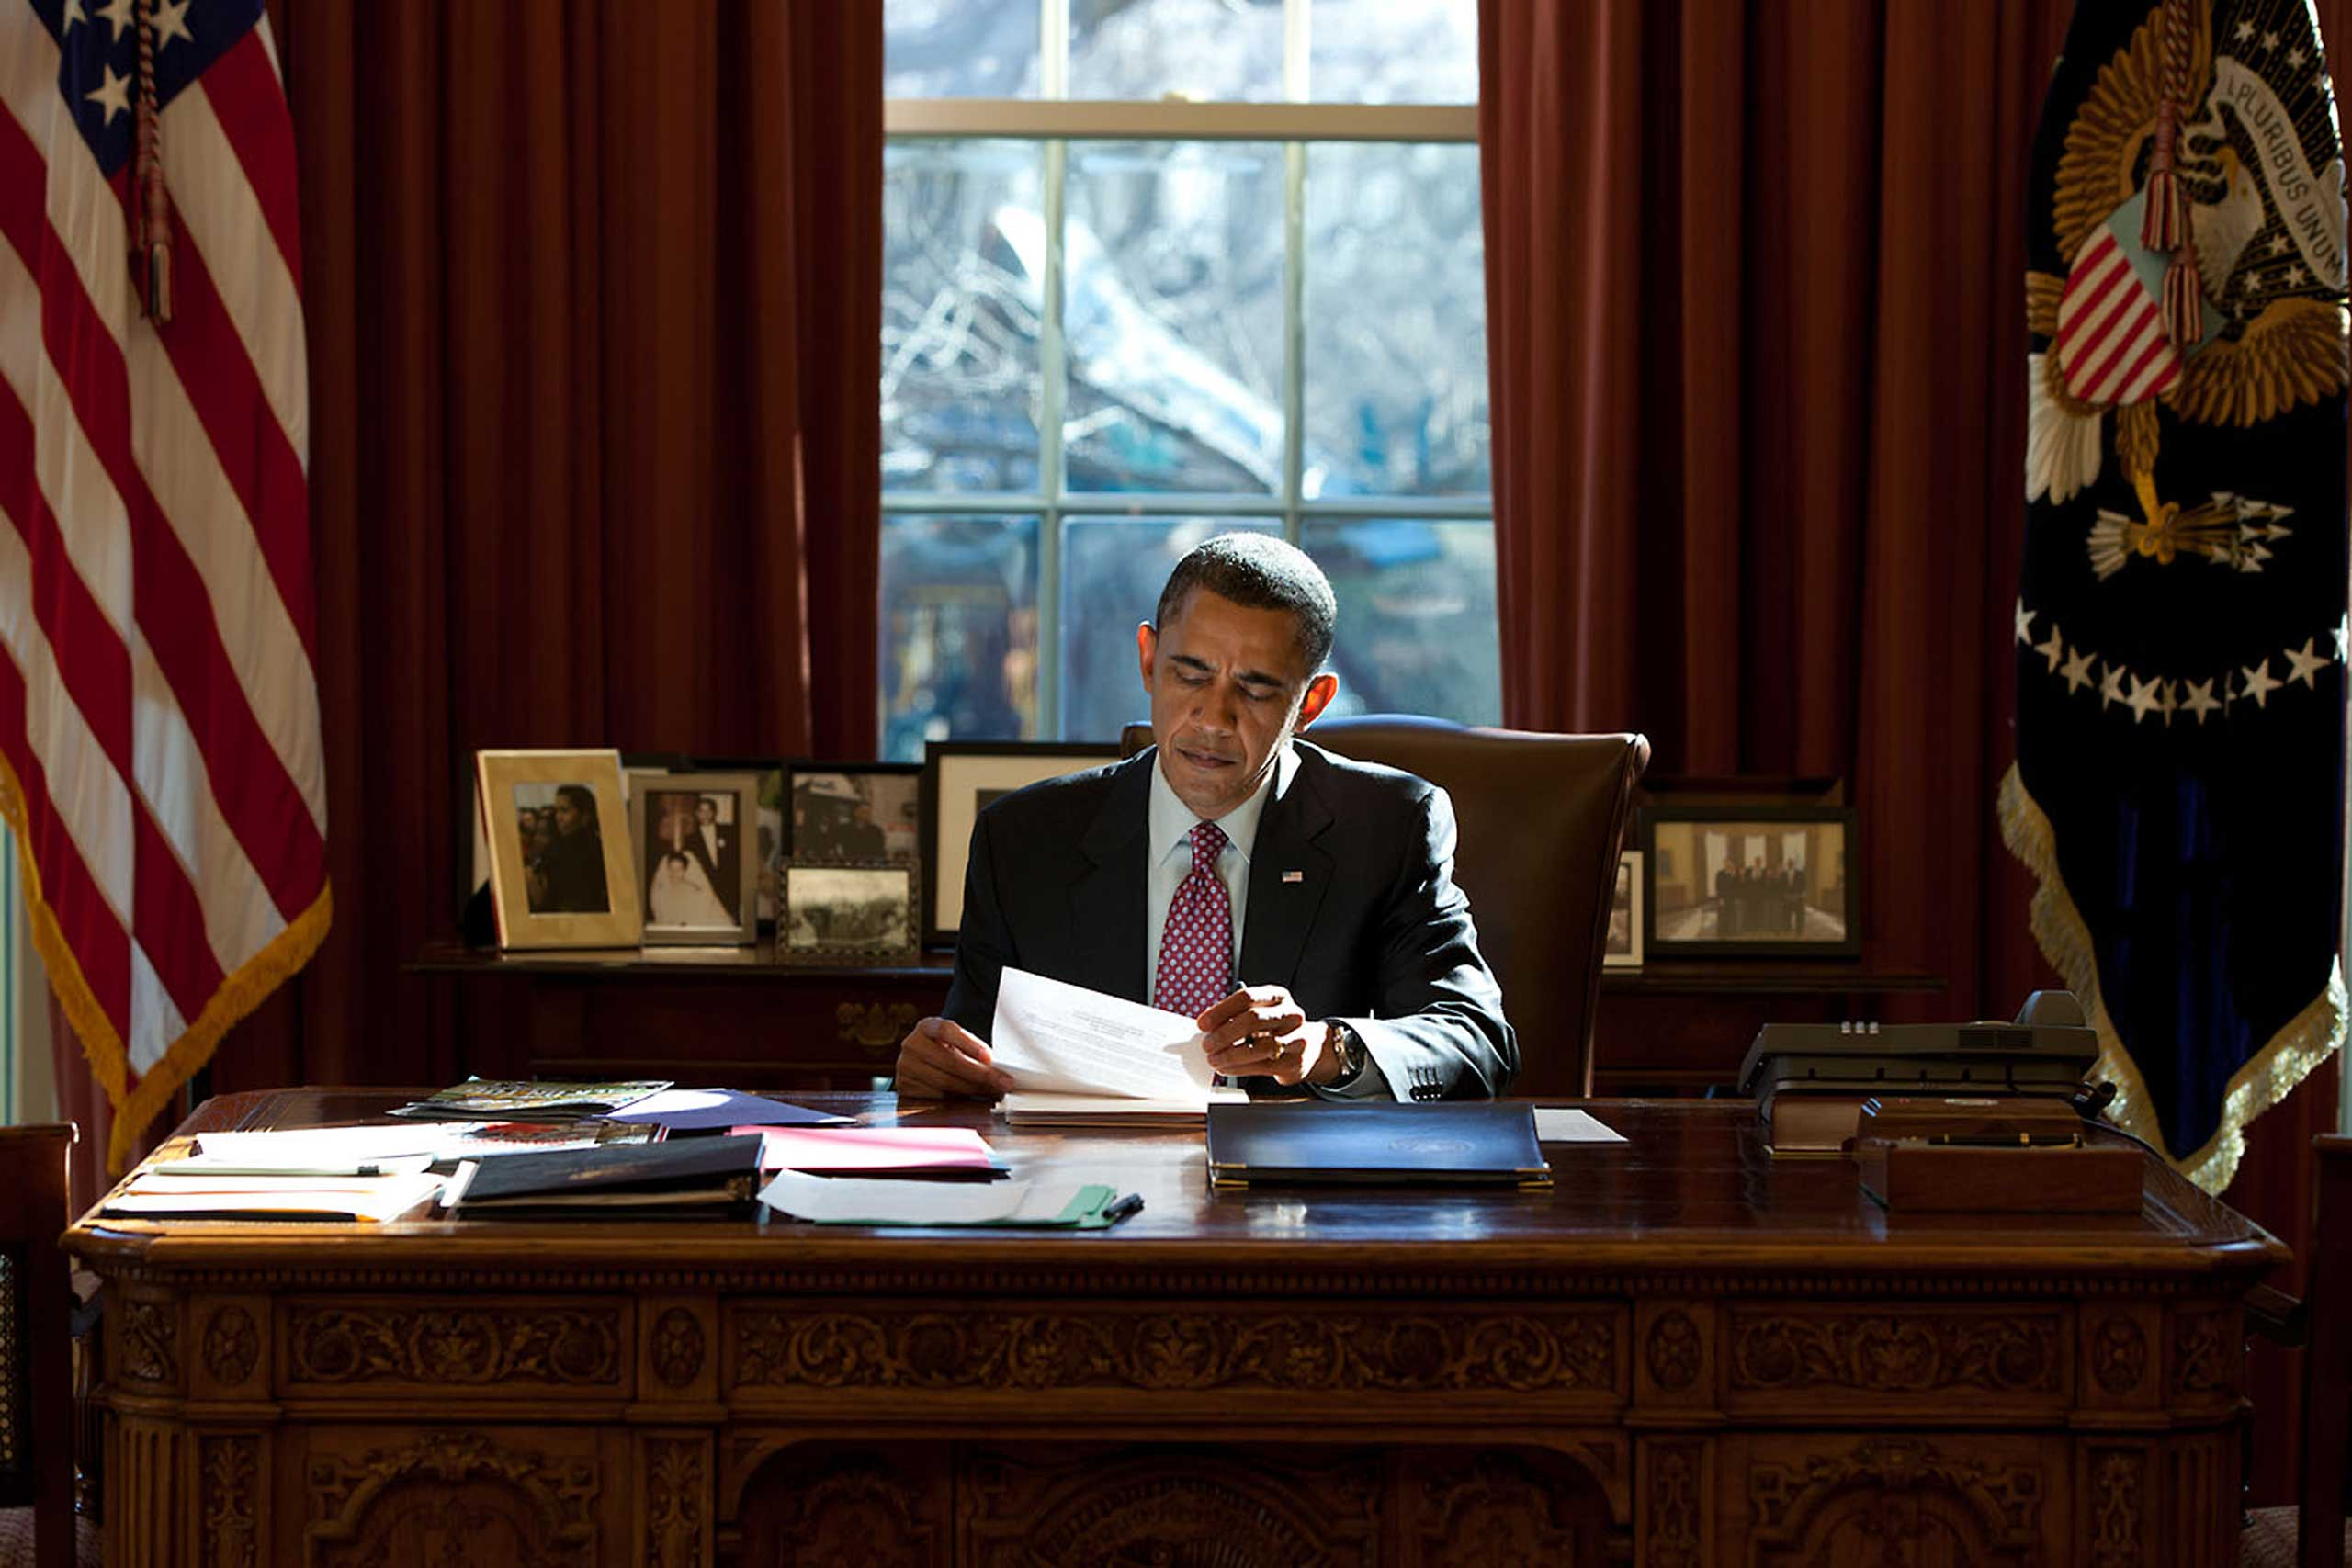 President Obama reads documents while sitting at the Resolute Desk in the Oval Office, Feb. 11, 2011.